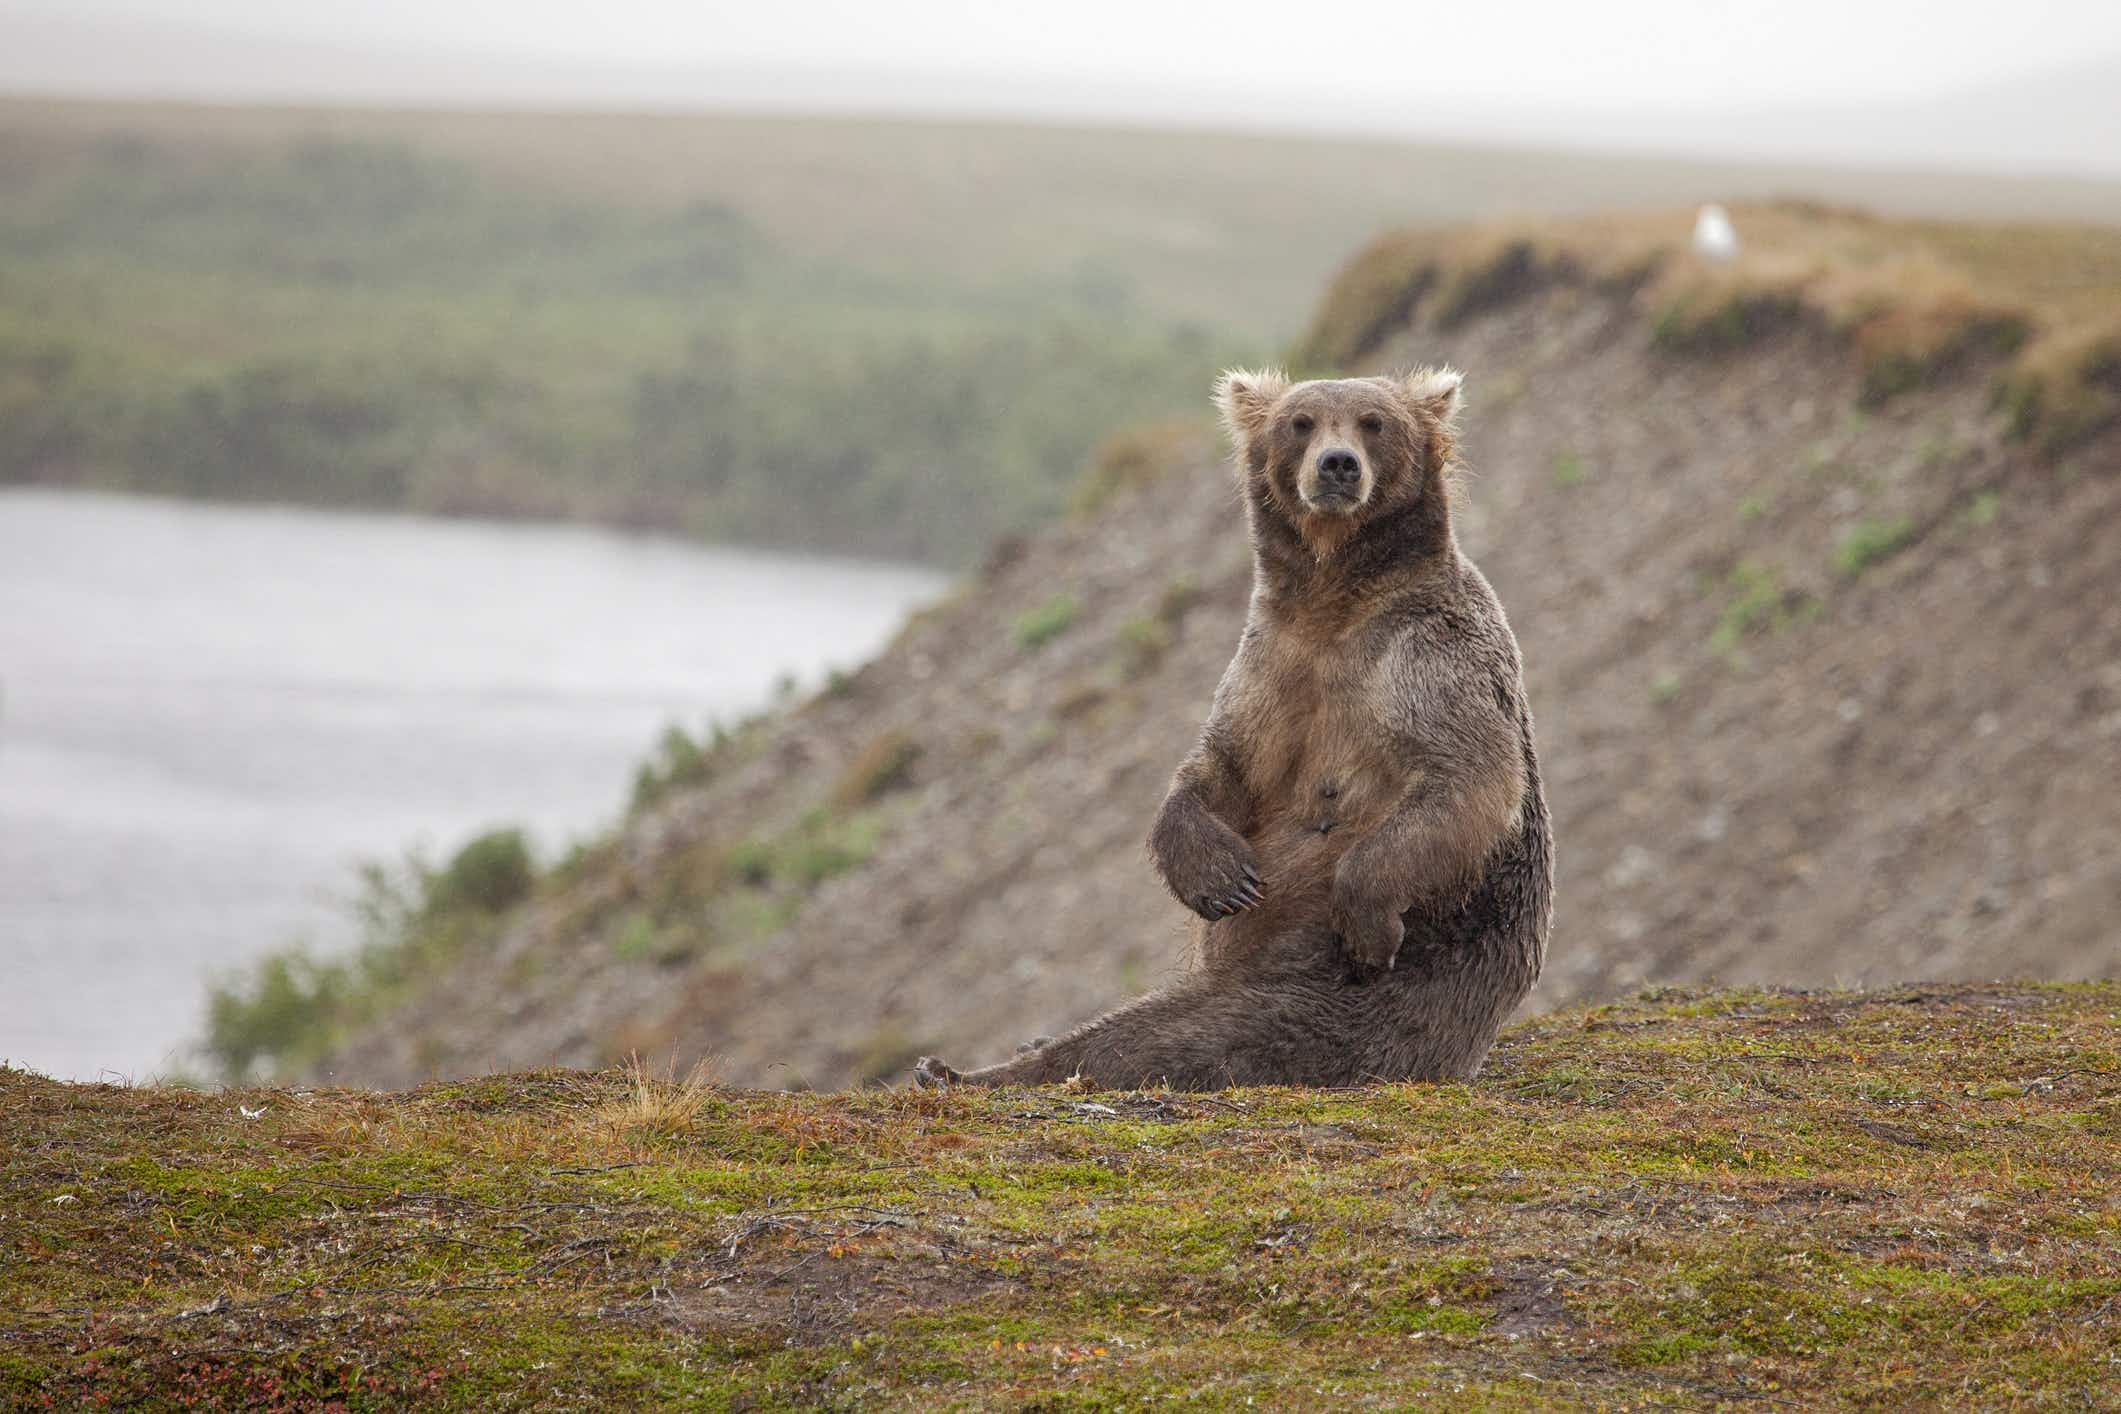 The grizzlies of Yellowstone have been taken off the endangered list